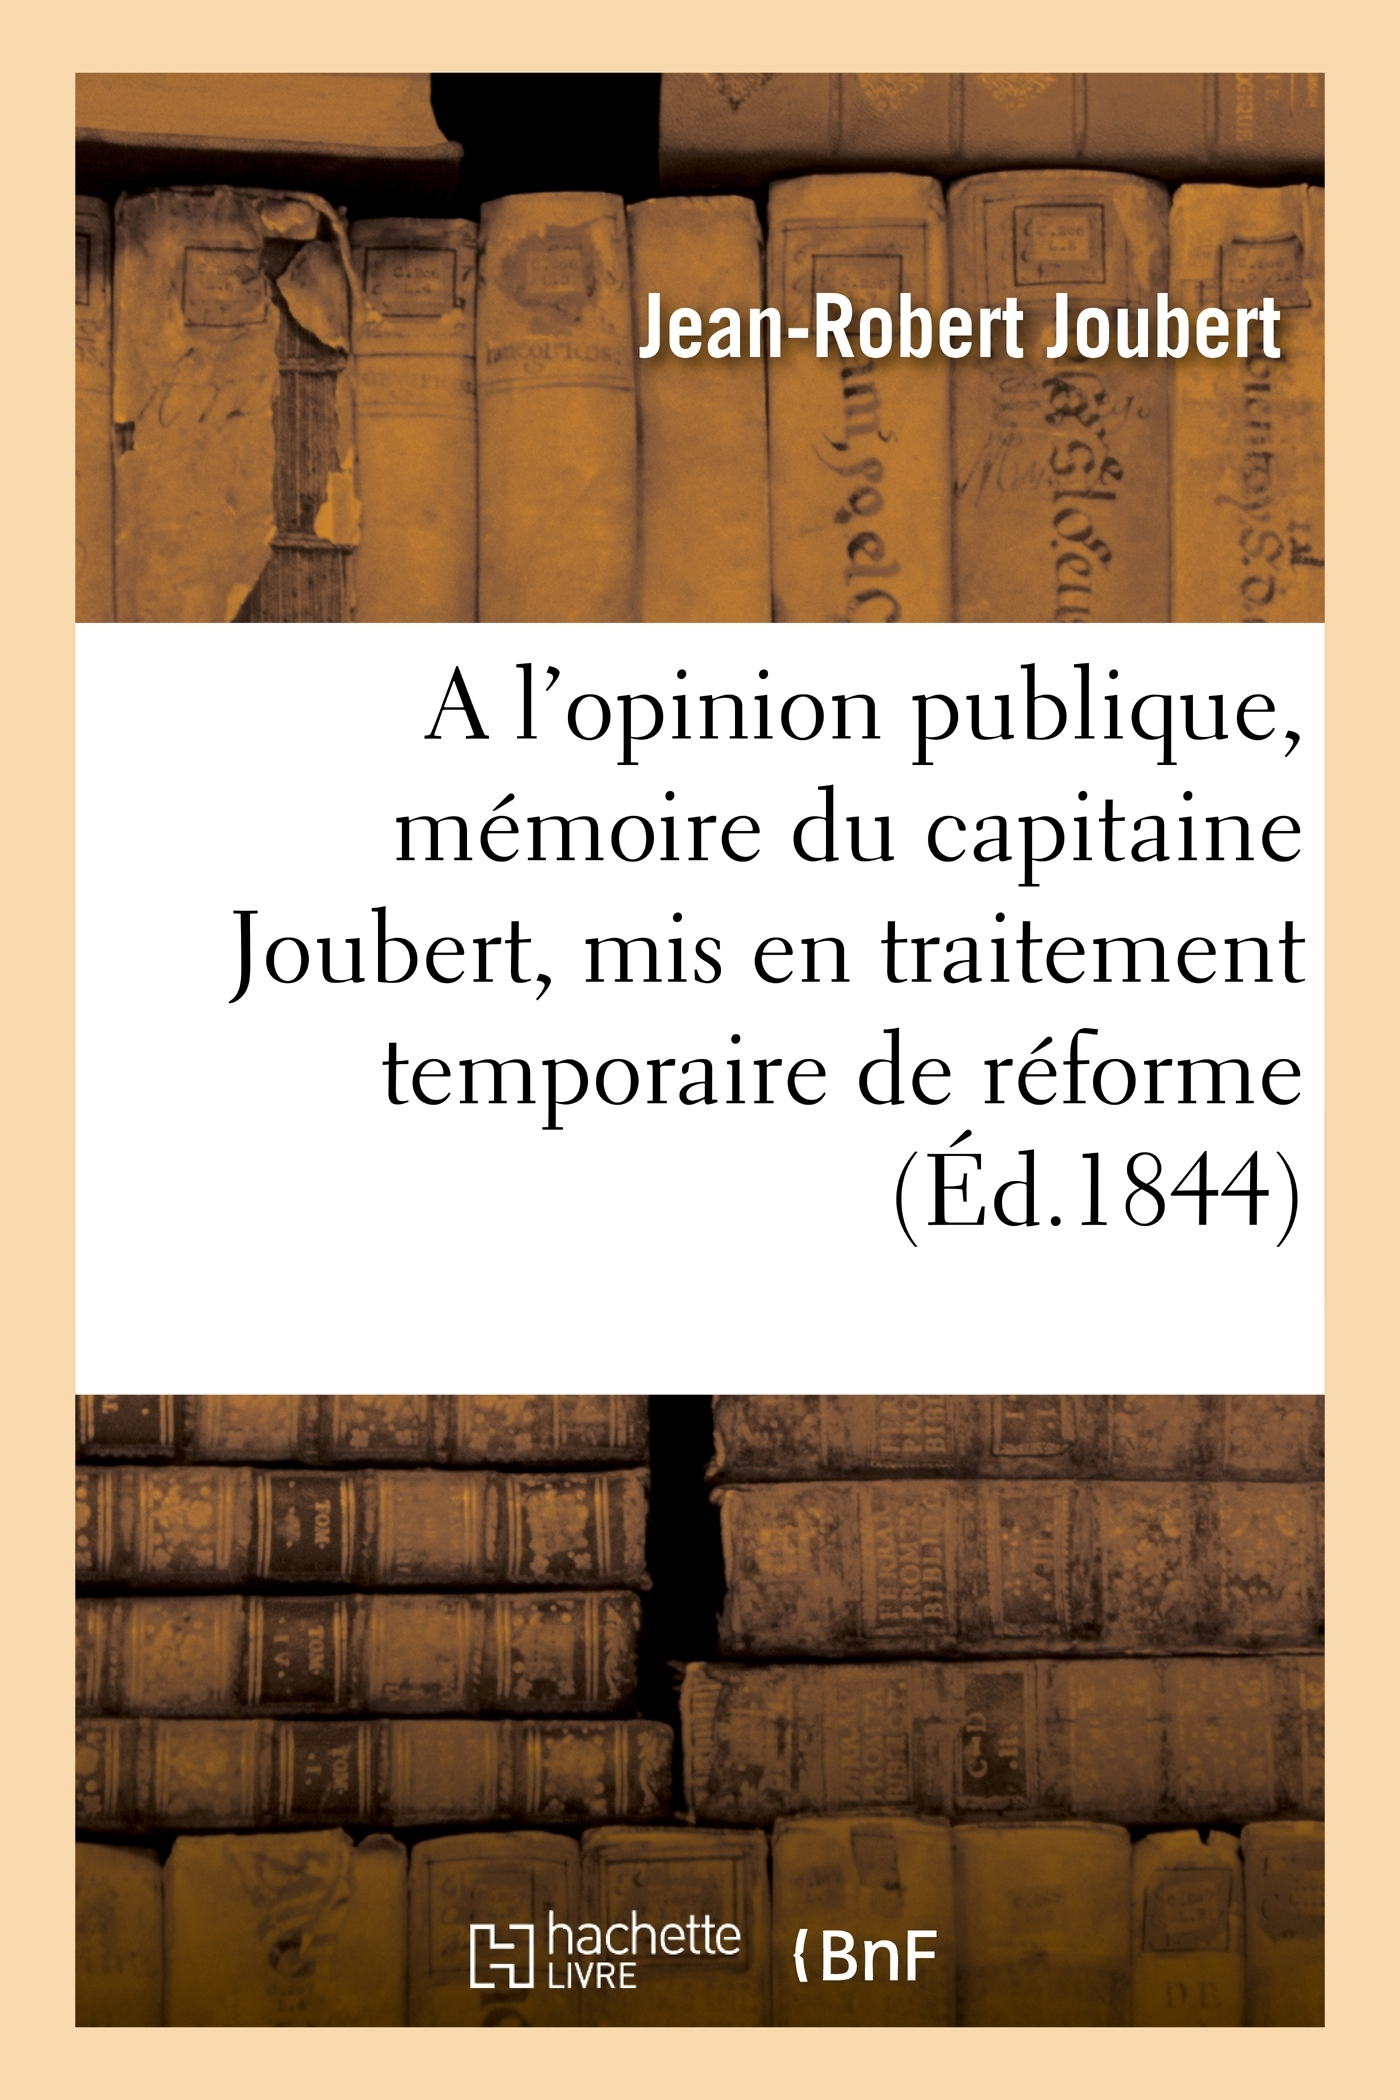 A L'OPINION PUBLIQUE, MEMOIRE DU CAPITAINE JOUBERT, MIS EN TRAITEMENT TEMPORAIRE DE REFORME